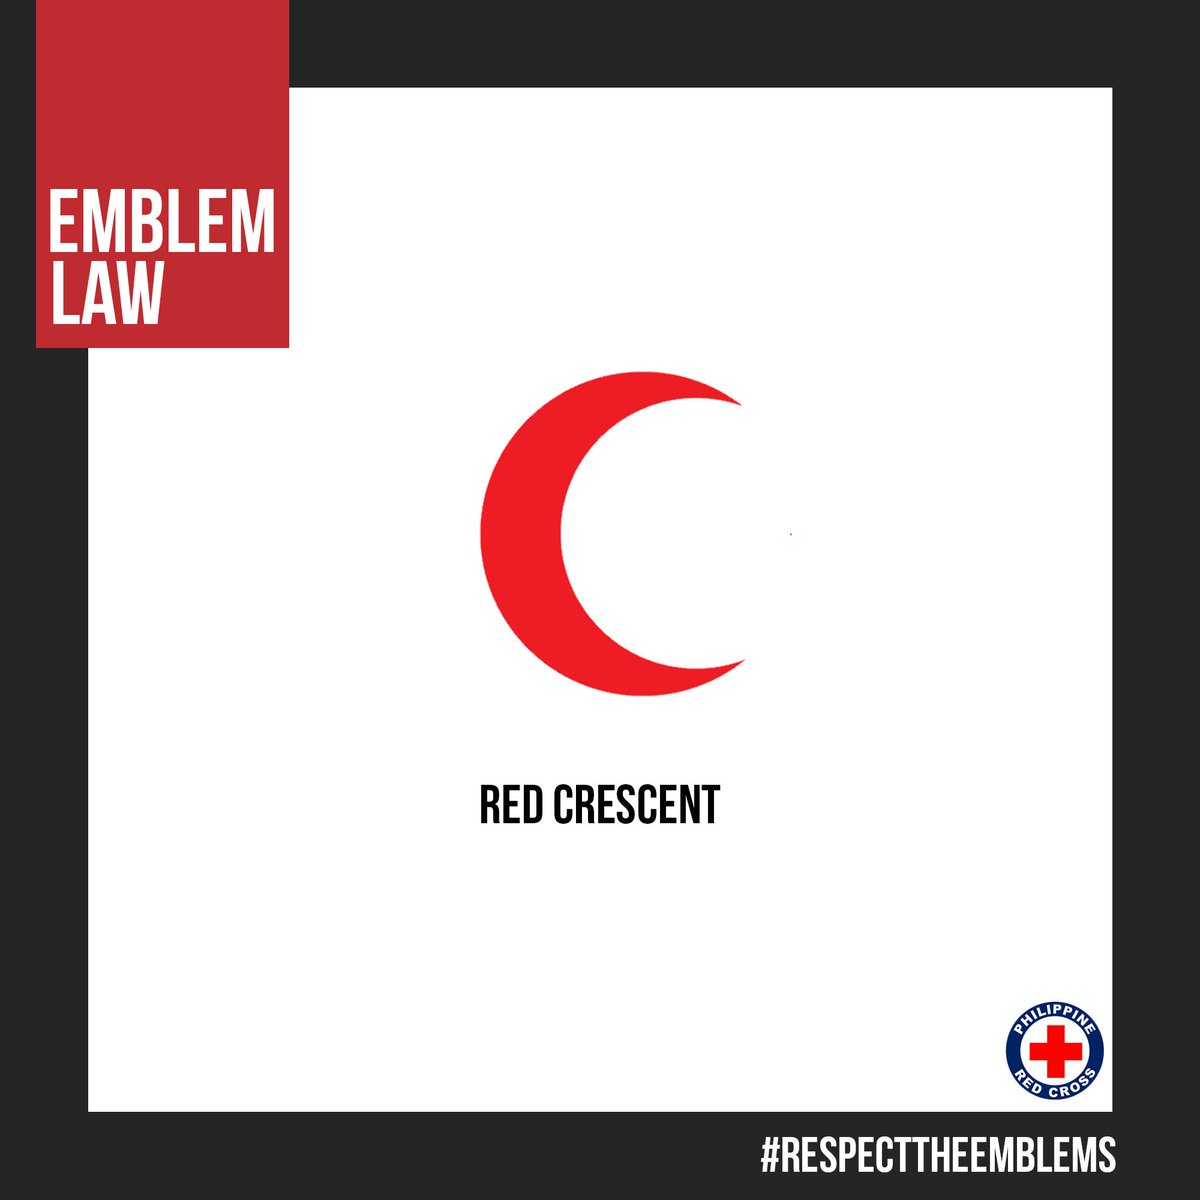 Philippine Red Cross On Twitter What Is The Purpose Of The Emblems